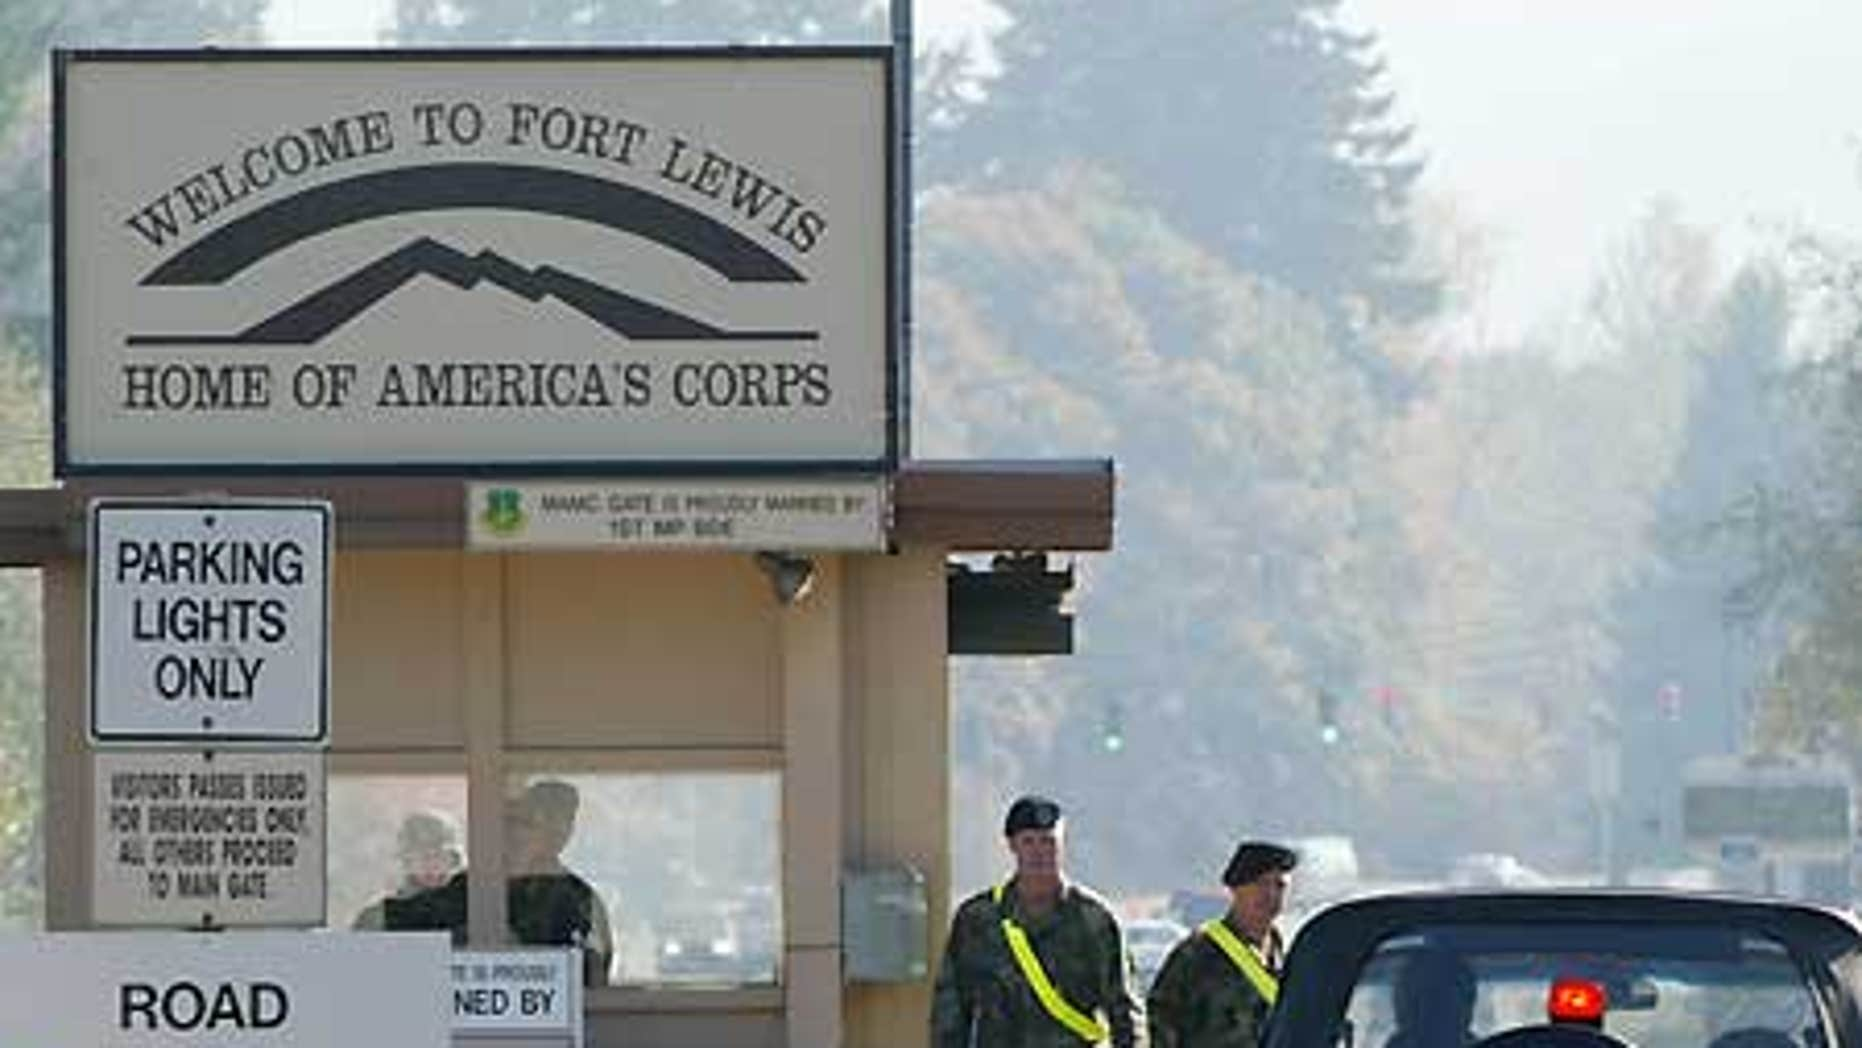 The entrance to the Fort Lewis army base in Washington State.